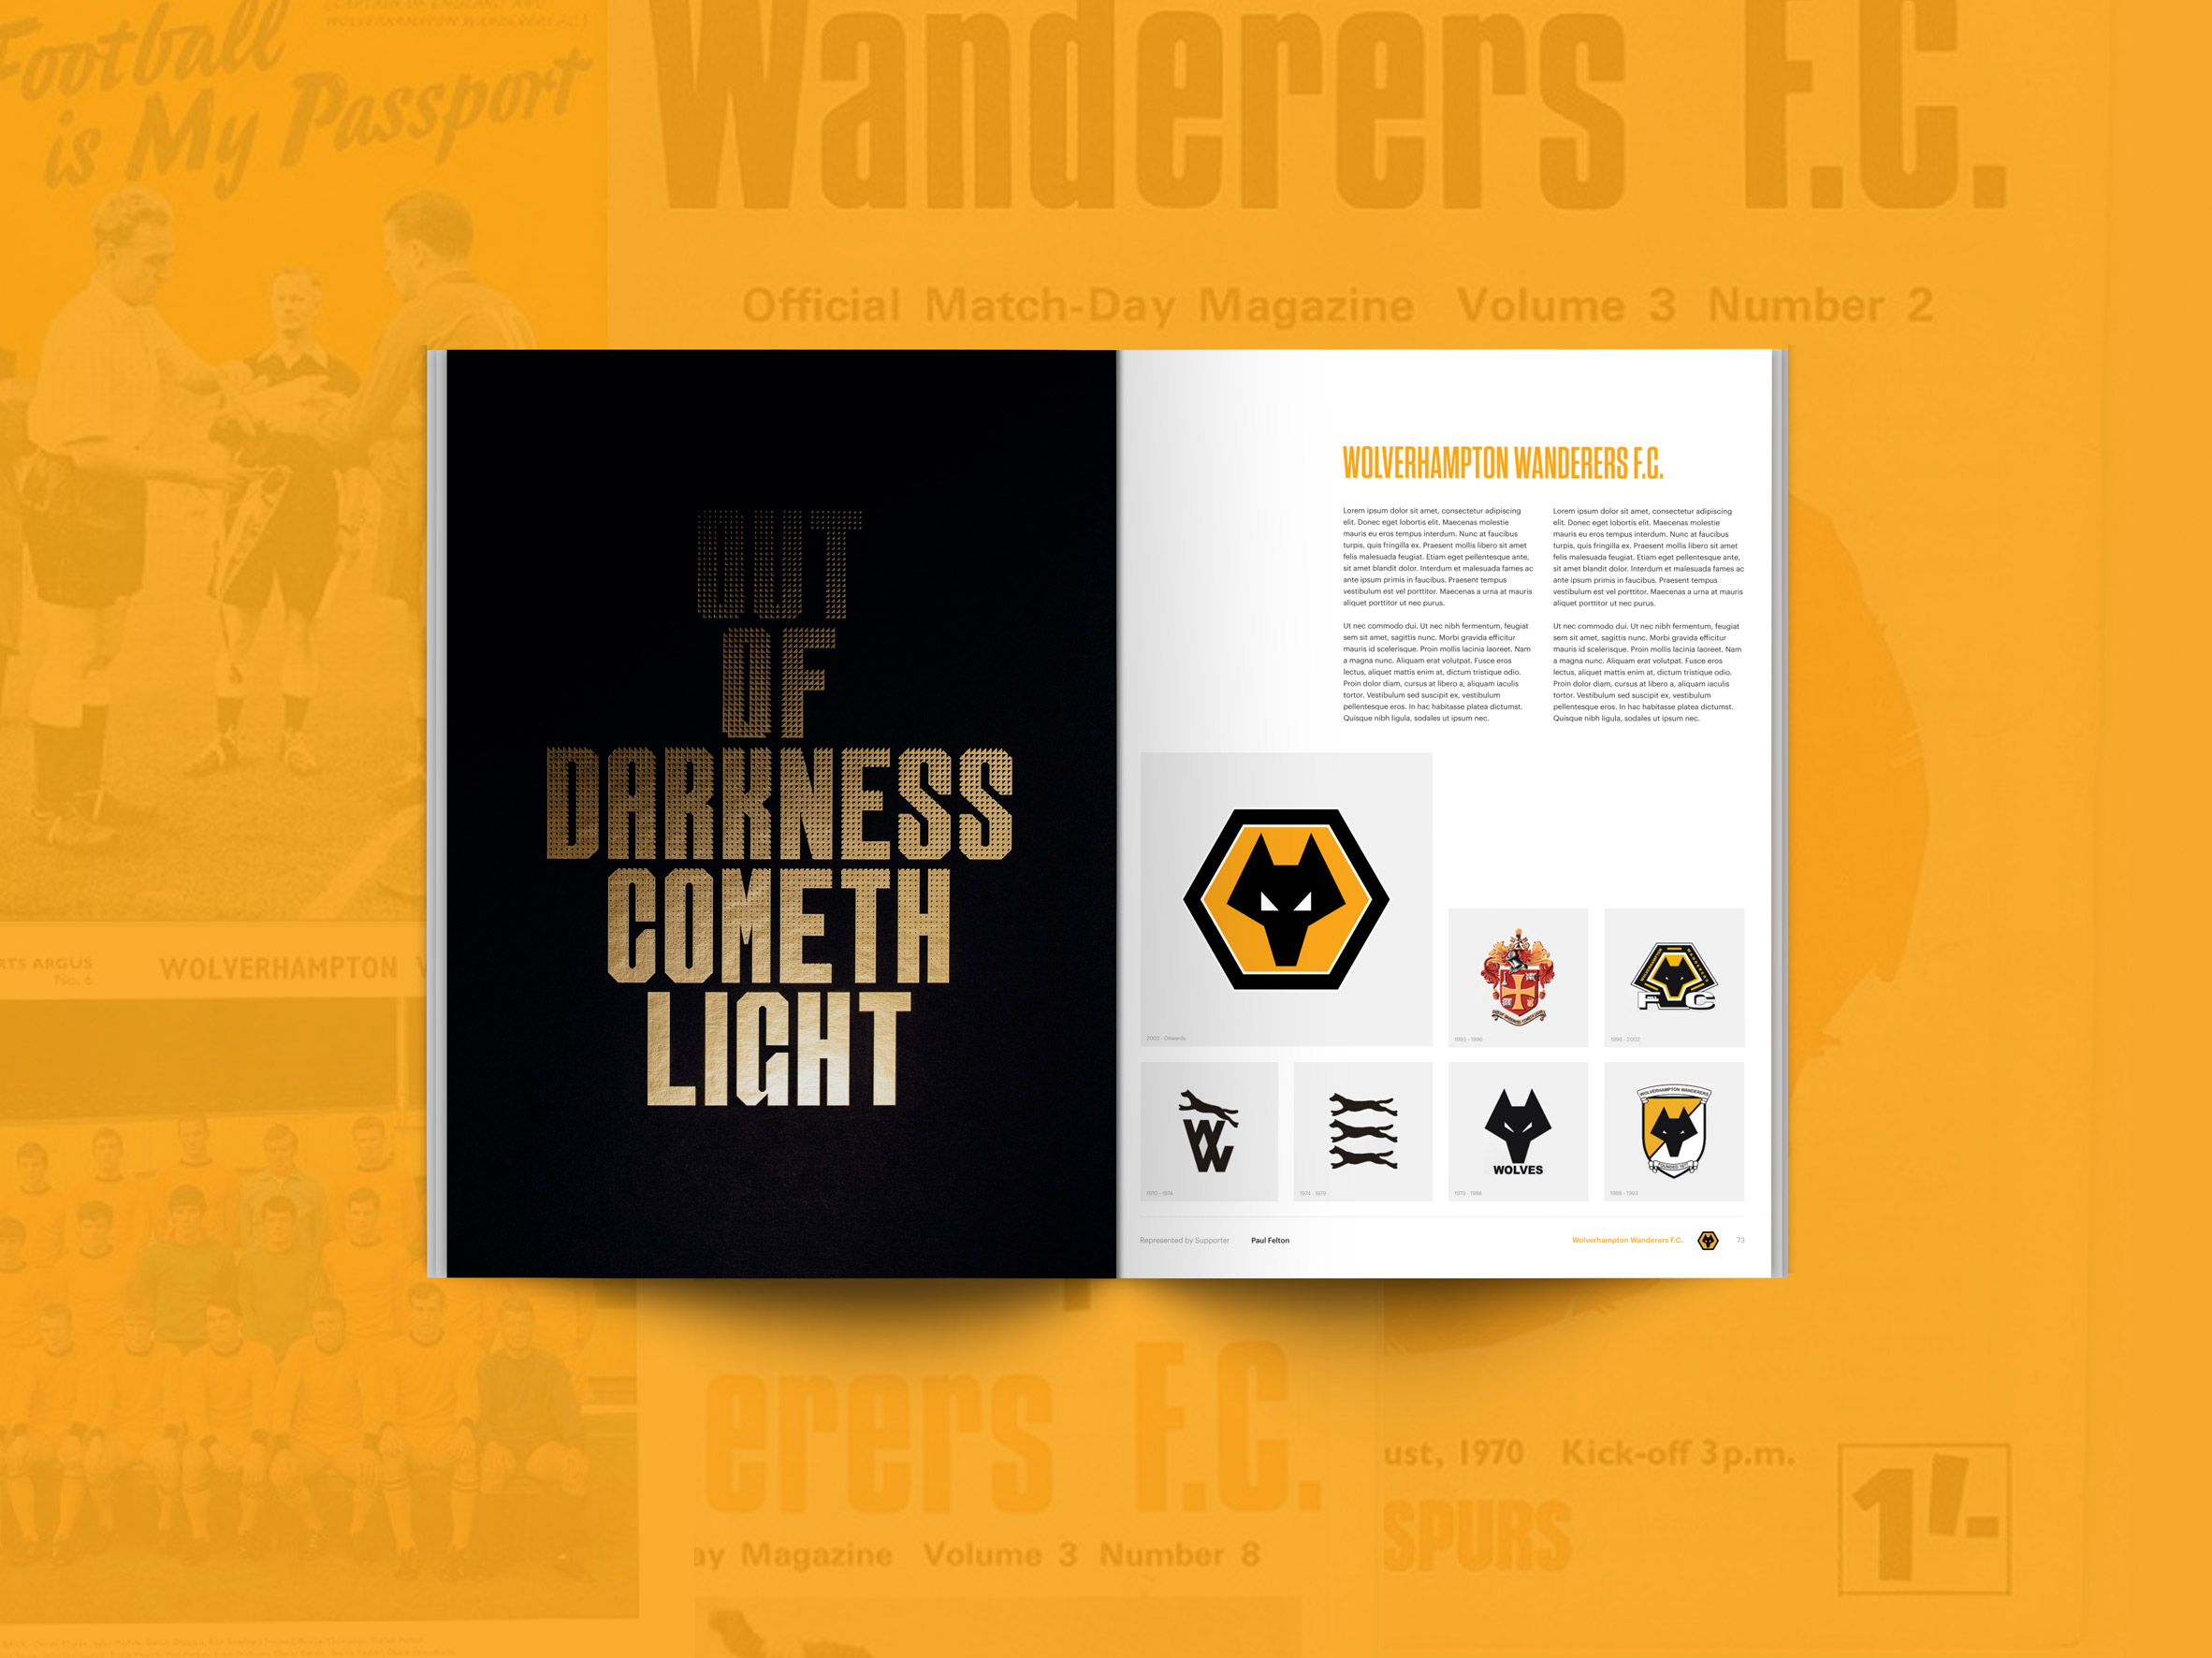 Competition: win an index documenting crests from English football clubs over the years